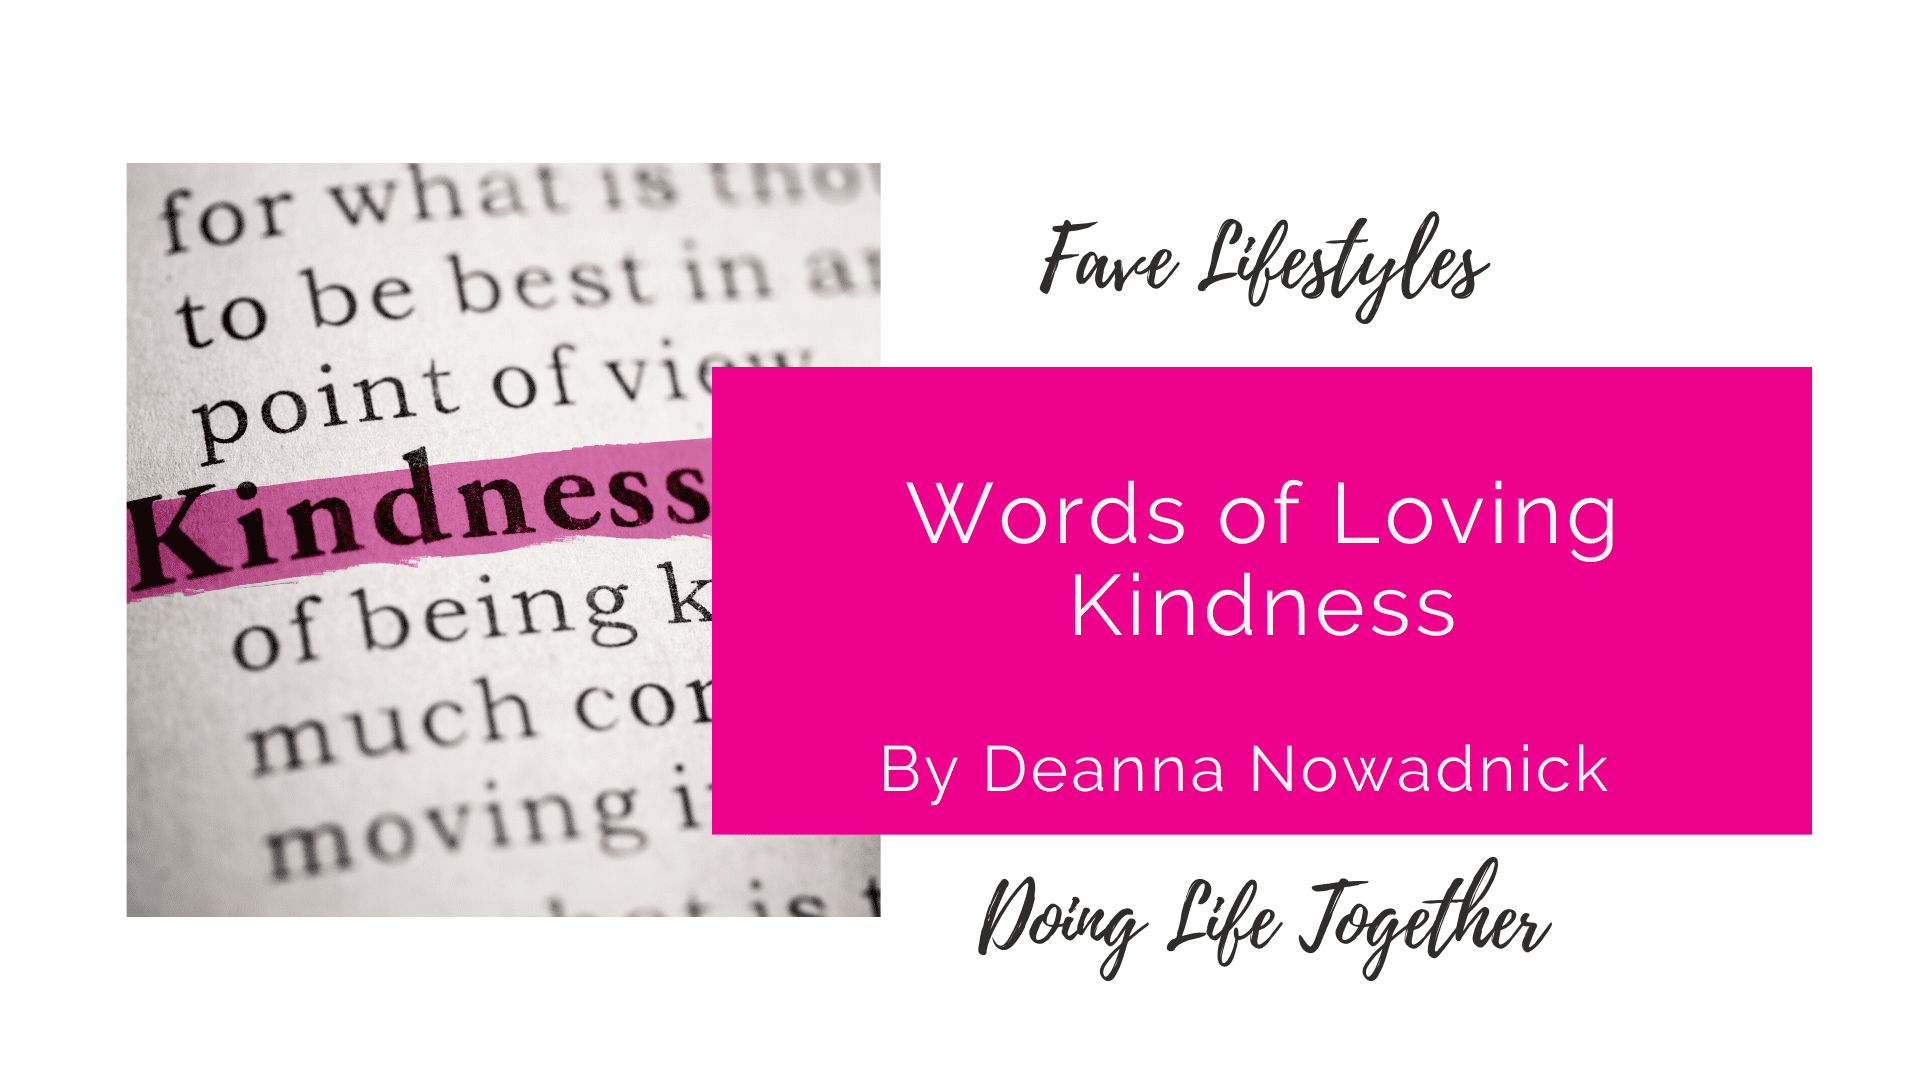 Words of Loving Kindness